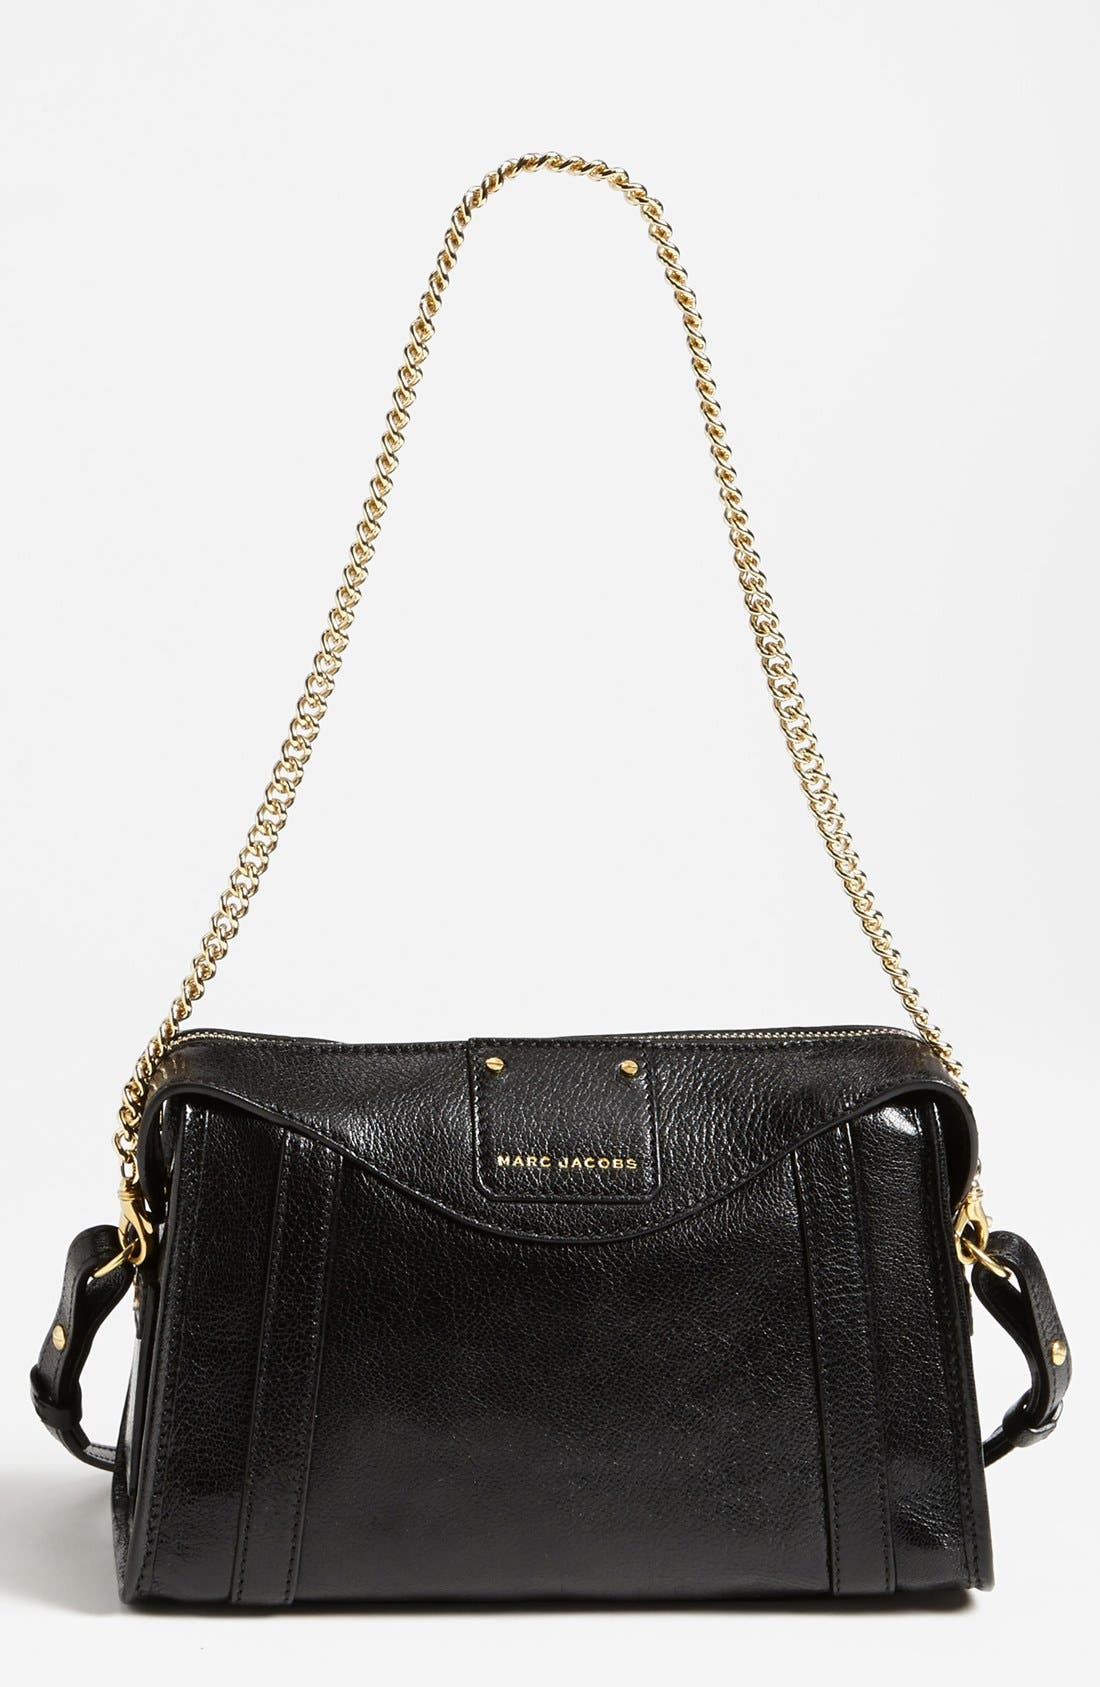 Main Image - MARC JACOBS 'Wellington - Peggy' Leather Crossbody Bag